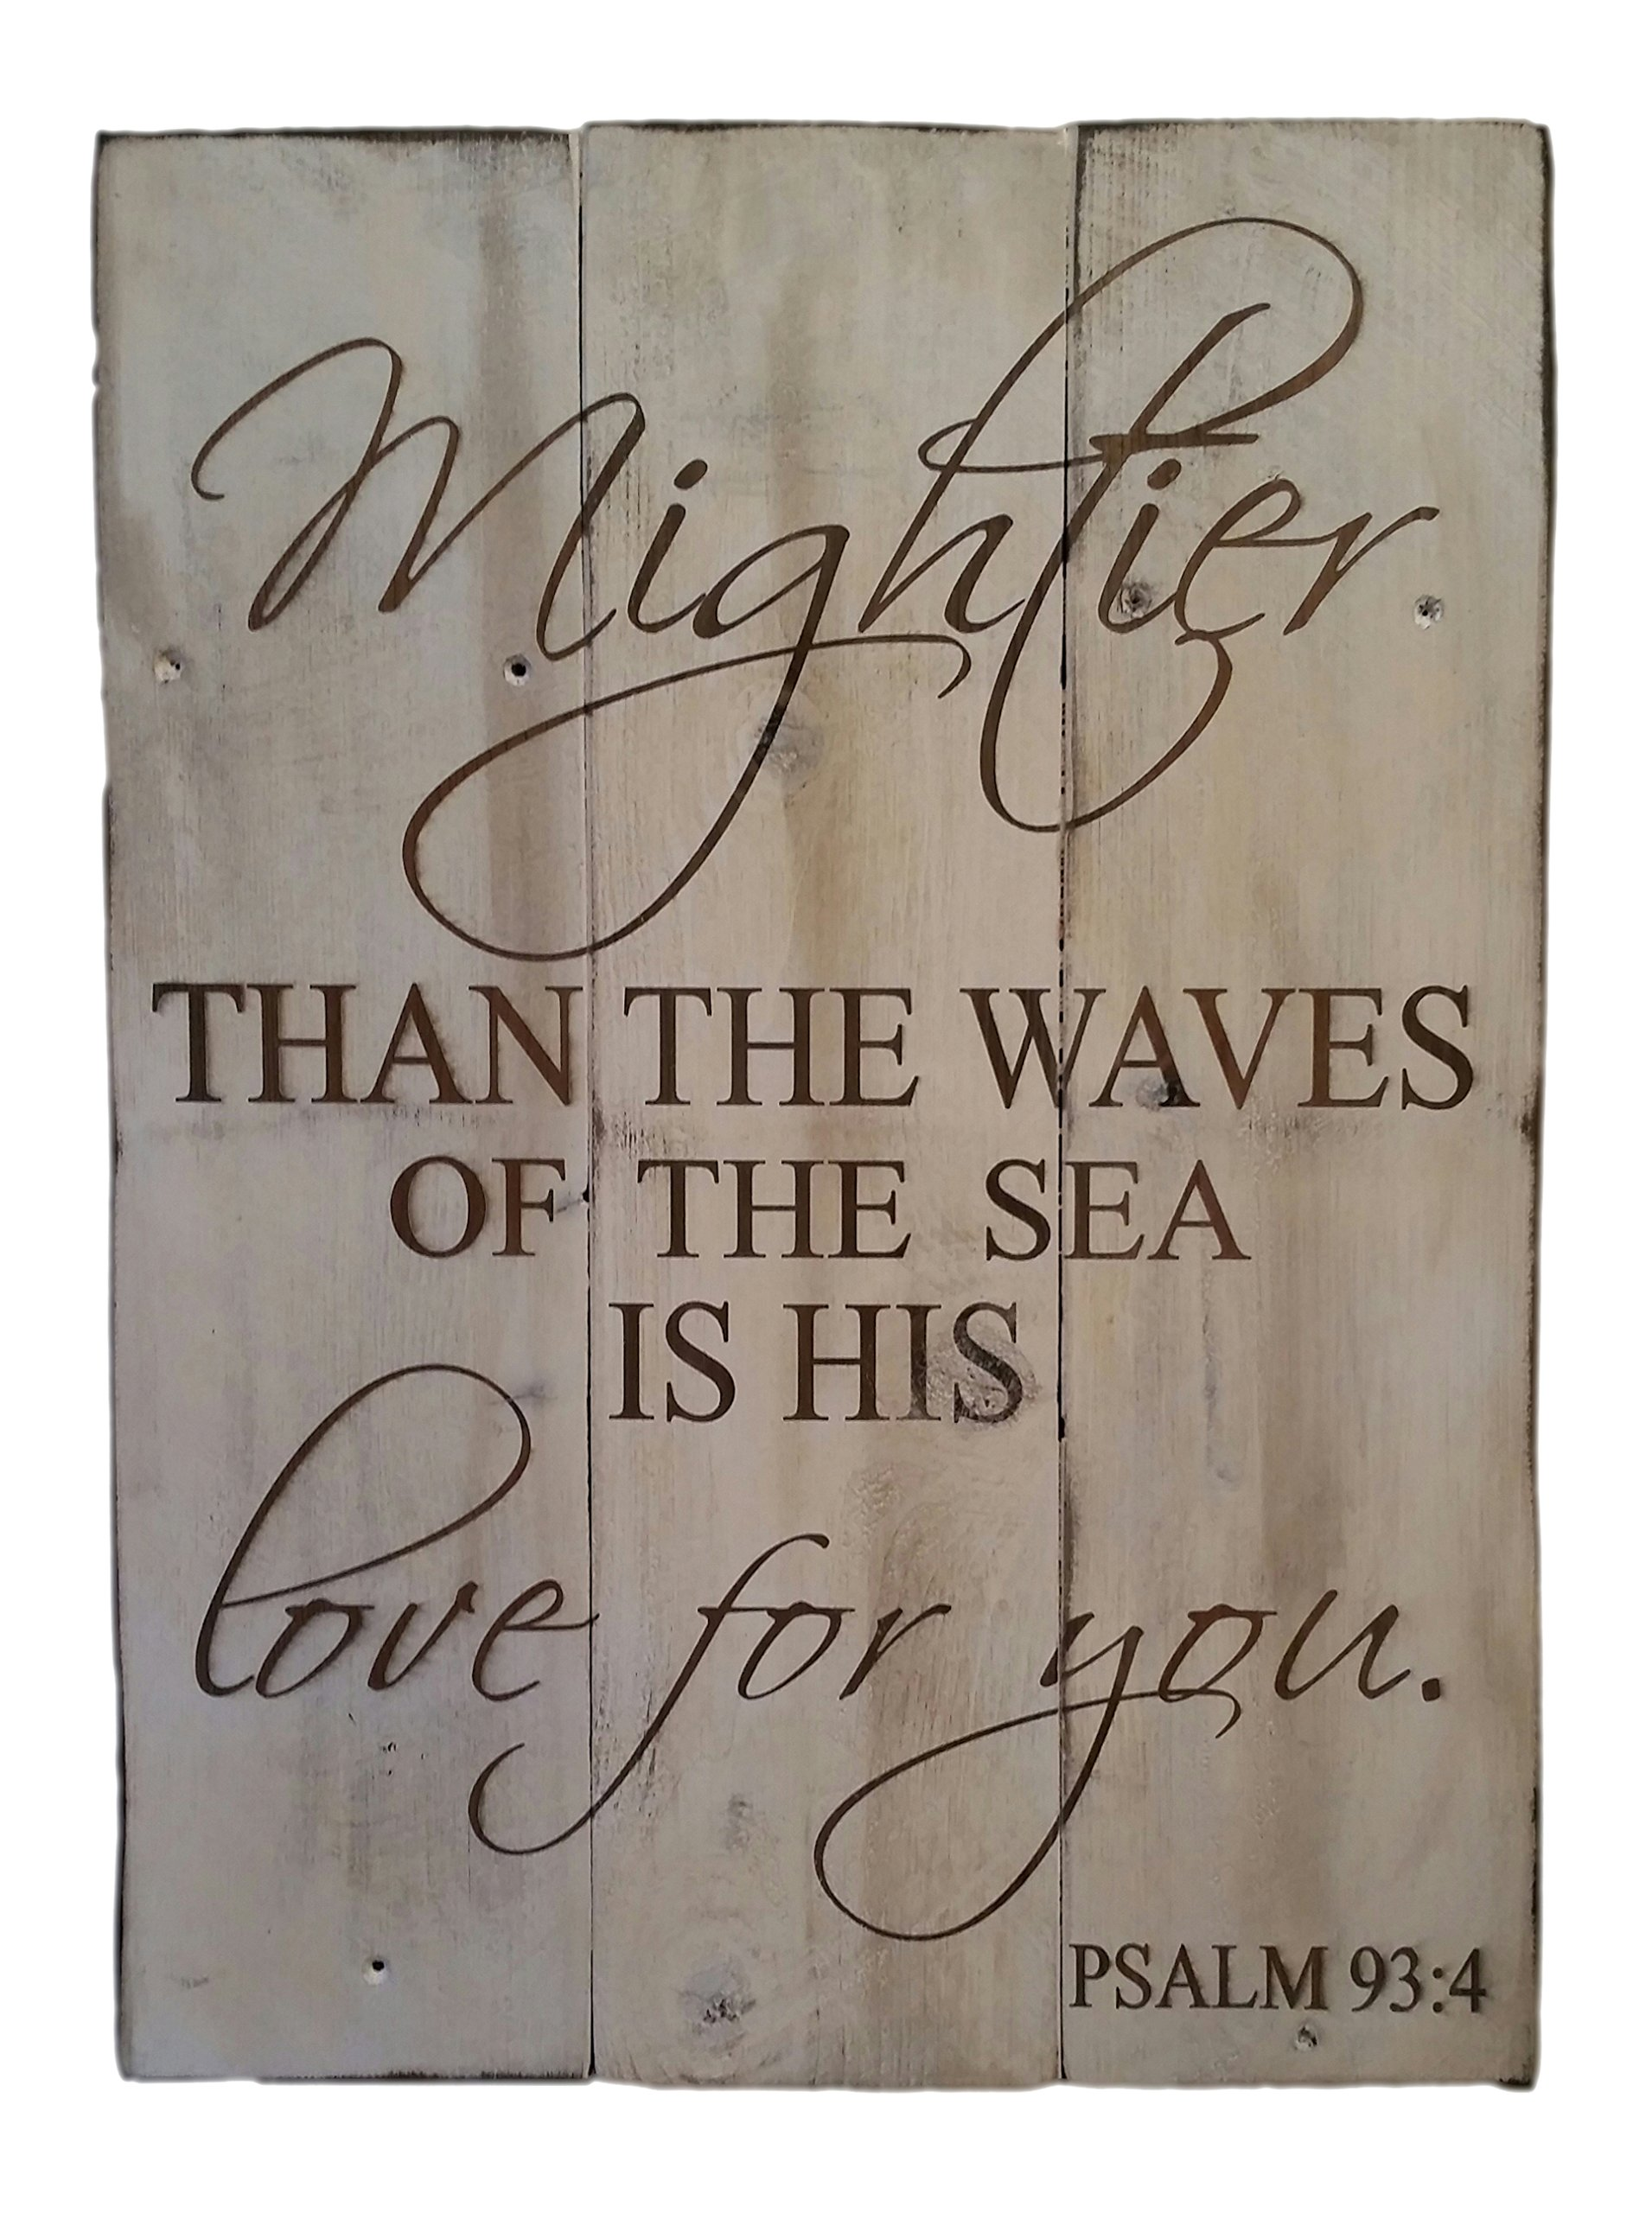 Rustic Engraved Wood Sign - 23'' x 16'' - Mightier than the Waves of the Sea is His Love for You - White